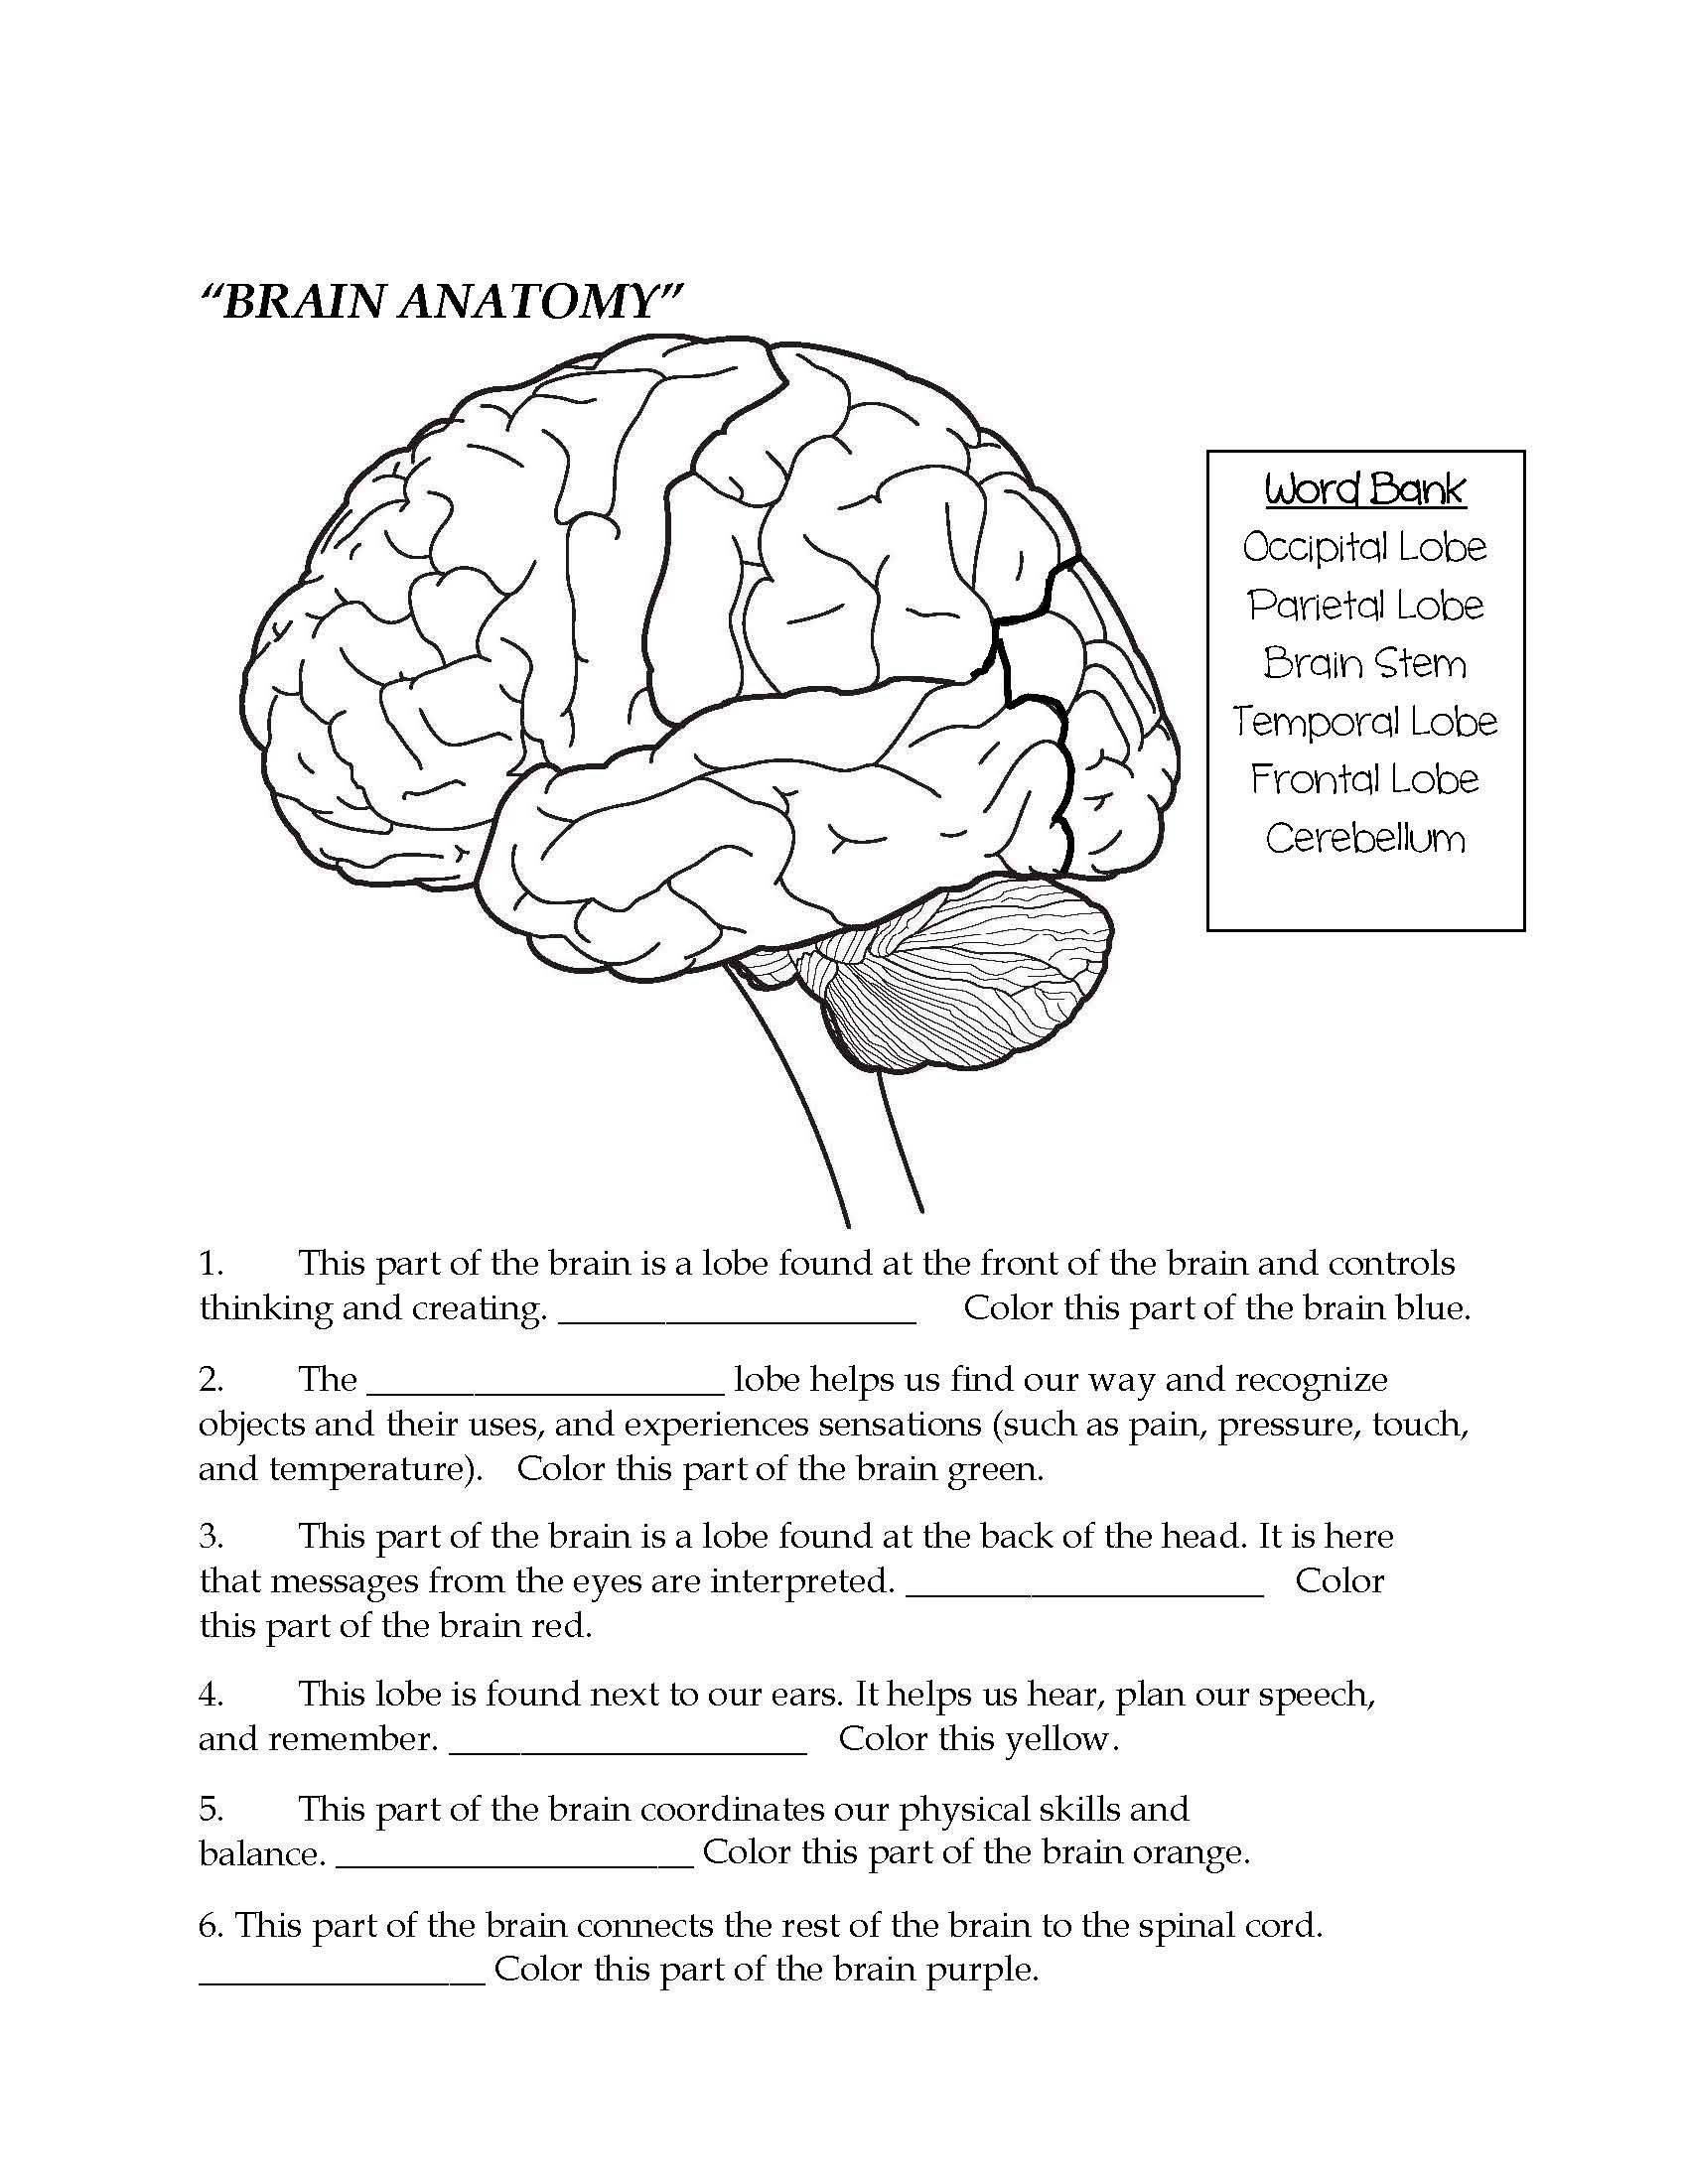 Nervous System Coloring Worksheet Brain Parts Fill In the Blank & Color